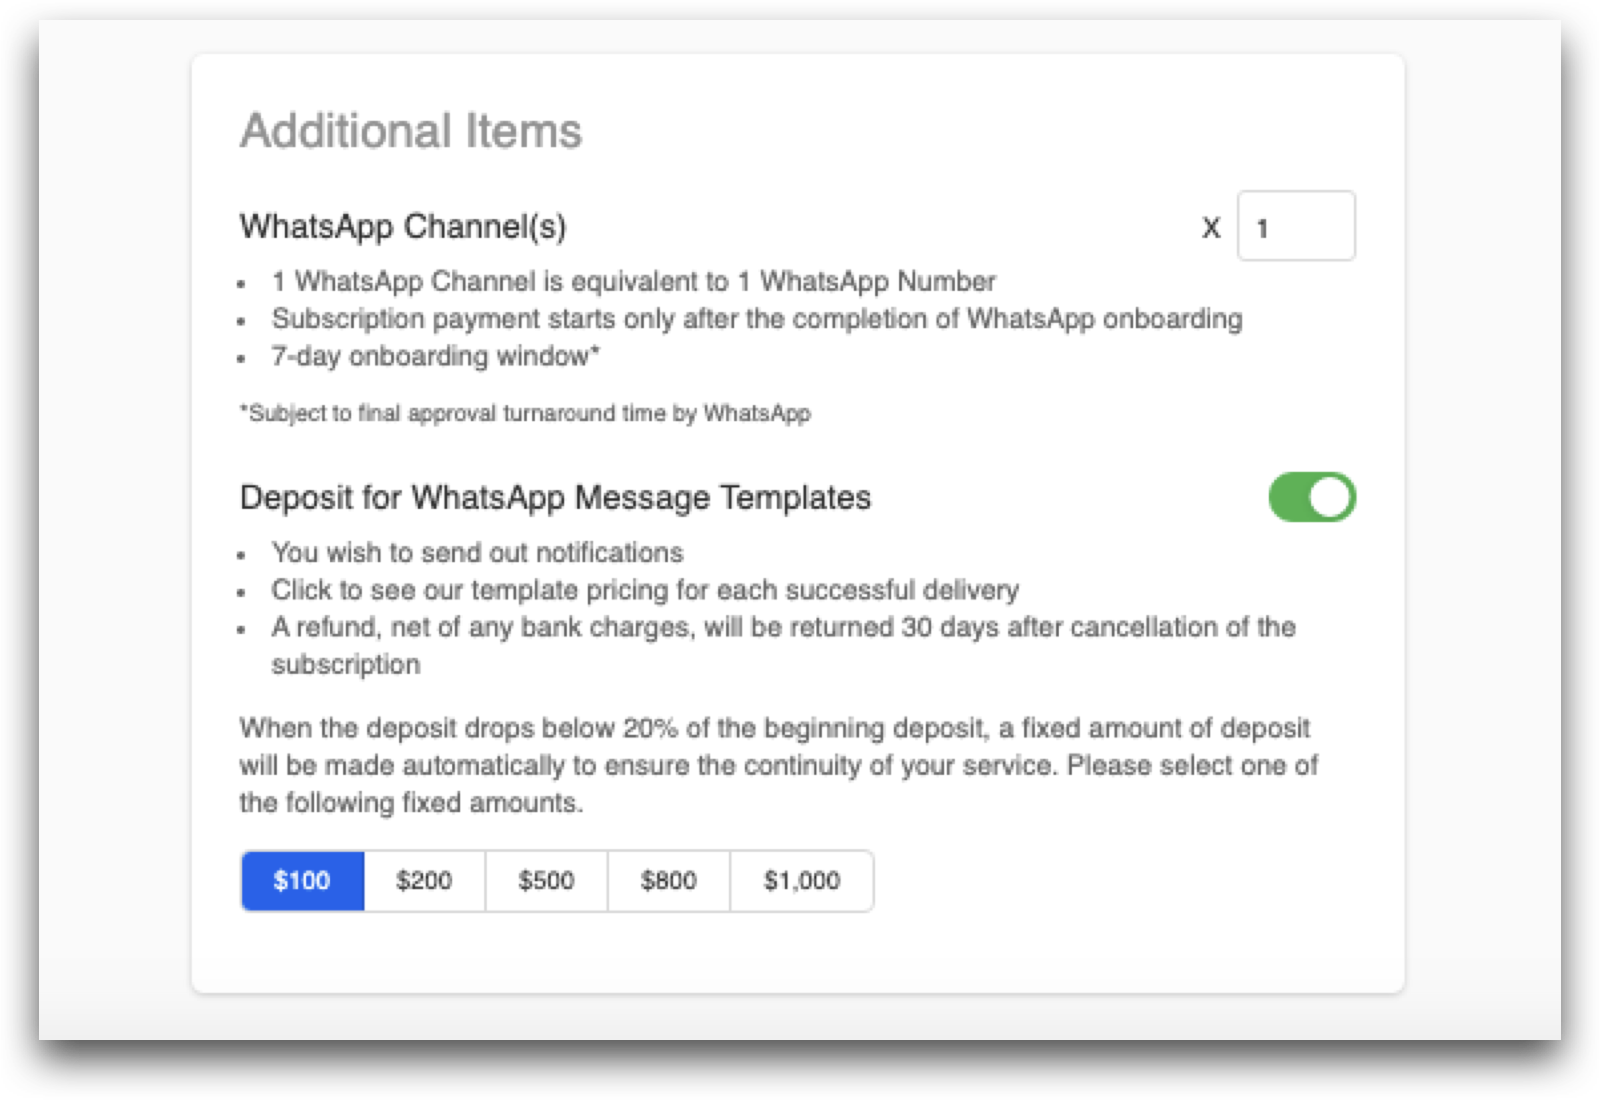 Indicate the number of WhatsApp channel & choose the WhatsApp Template Message deposit amount